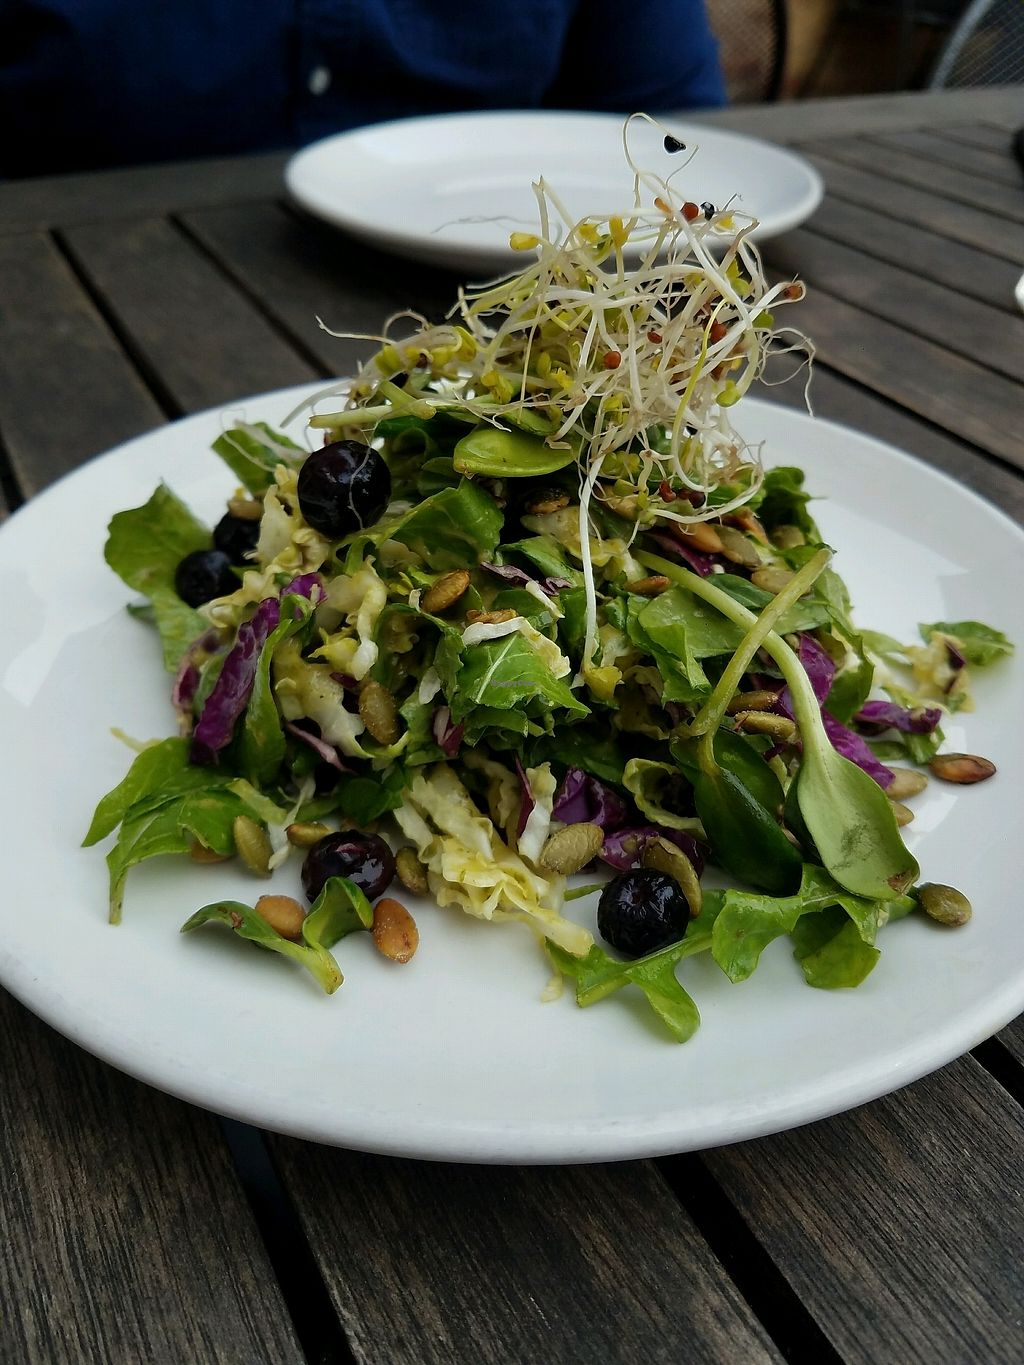 "Photo of Harvest Pizzeria  by <a href=""/members/profile/Silly%20Little%20Vegan"">Silly Little Vegan</a> <br/>Vegan salad option <br/> March 11, 2018  - <a href='/contact/abuse/image/81773/369395'>Report</a>"